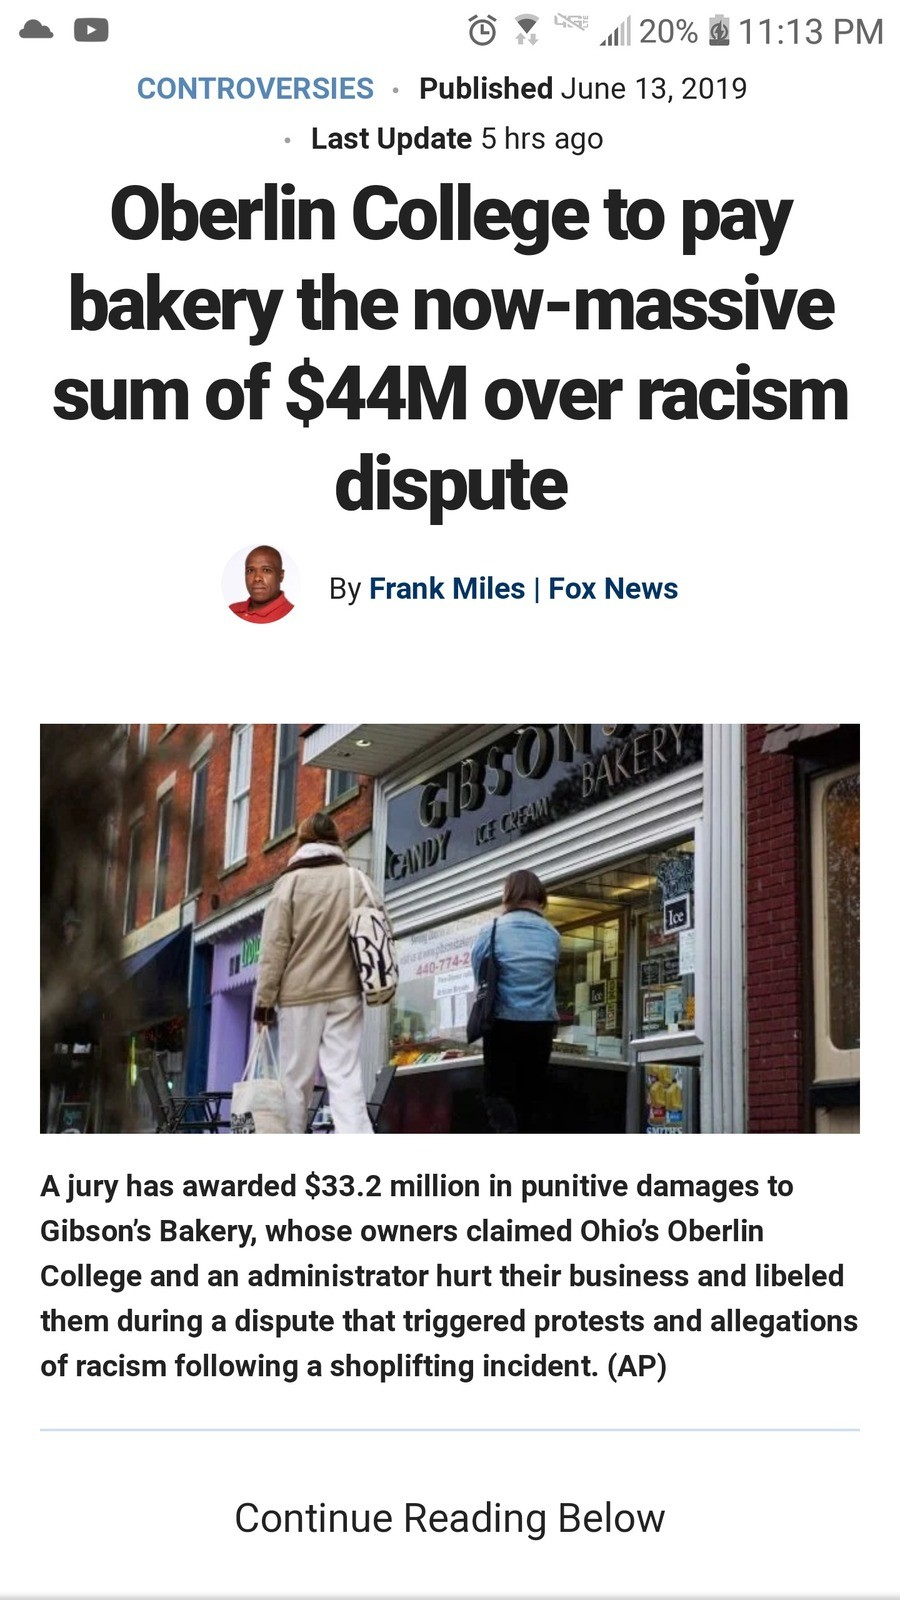 Get woke go broke 2: jigaboo bogaloo. https://www.foxnews.com/us/oberlin-college-to-pay-bakery-the-now-massive-sum-of-more-than-44m-over-racism-dispute should b